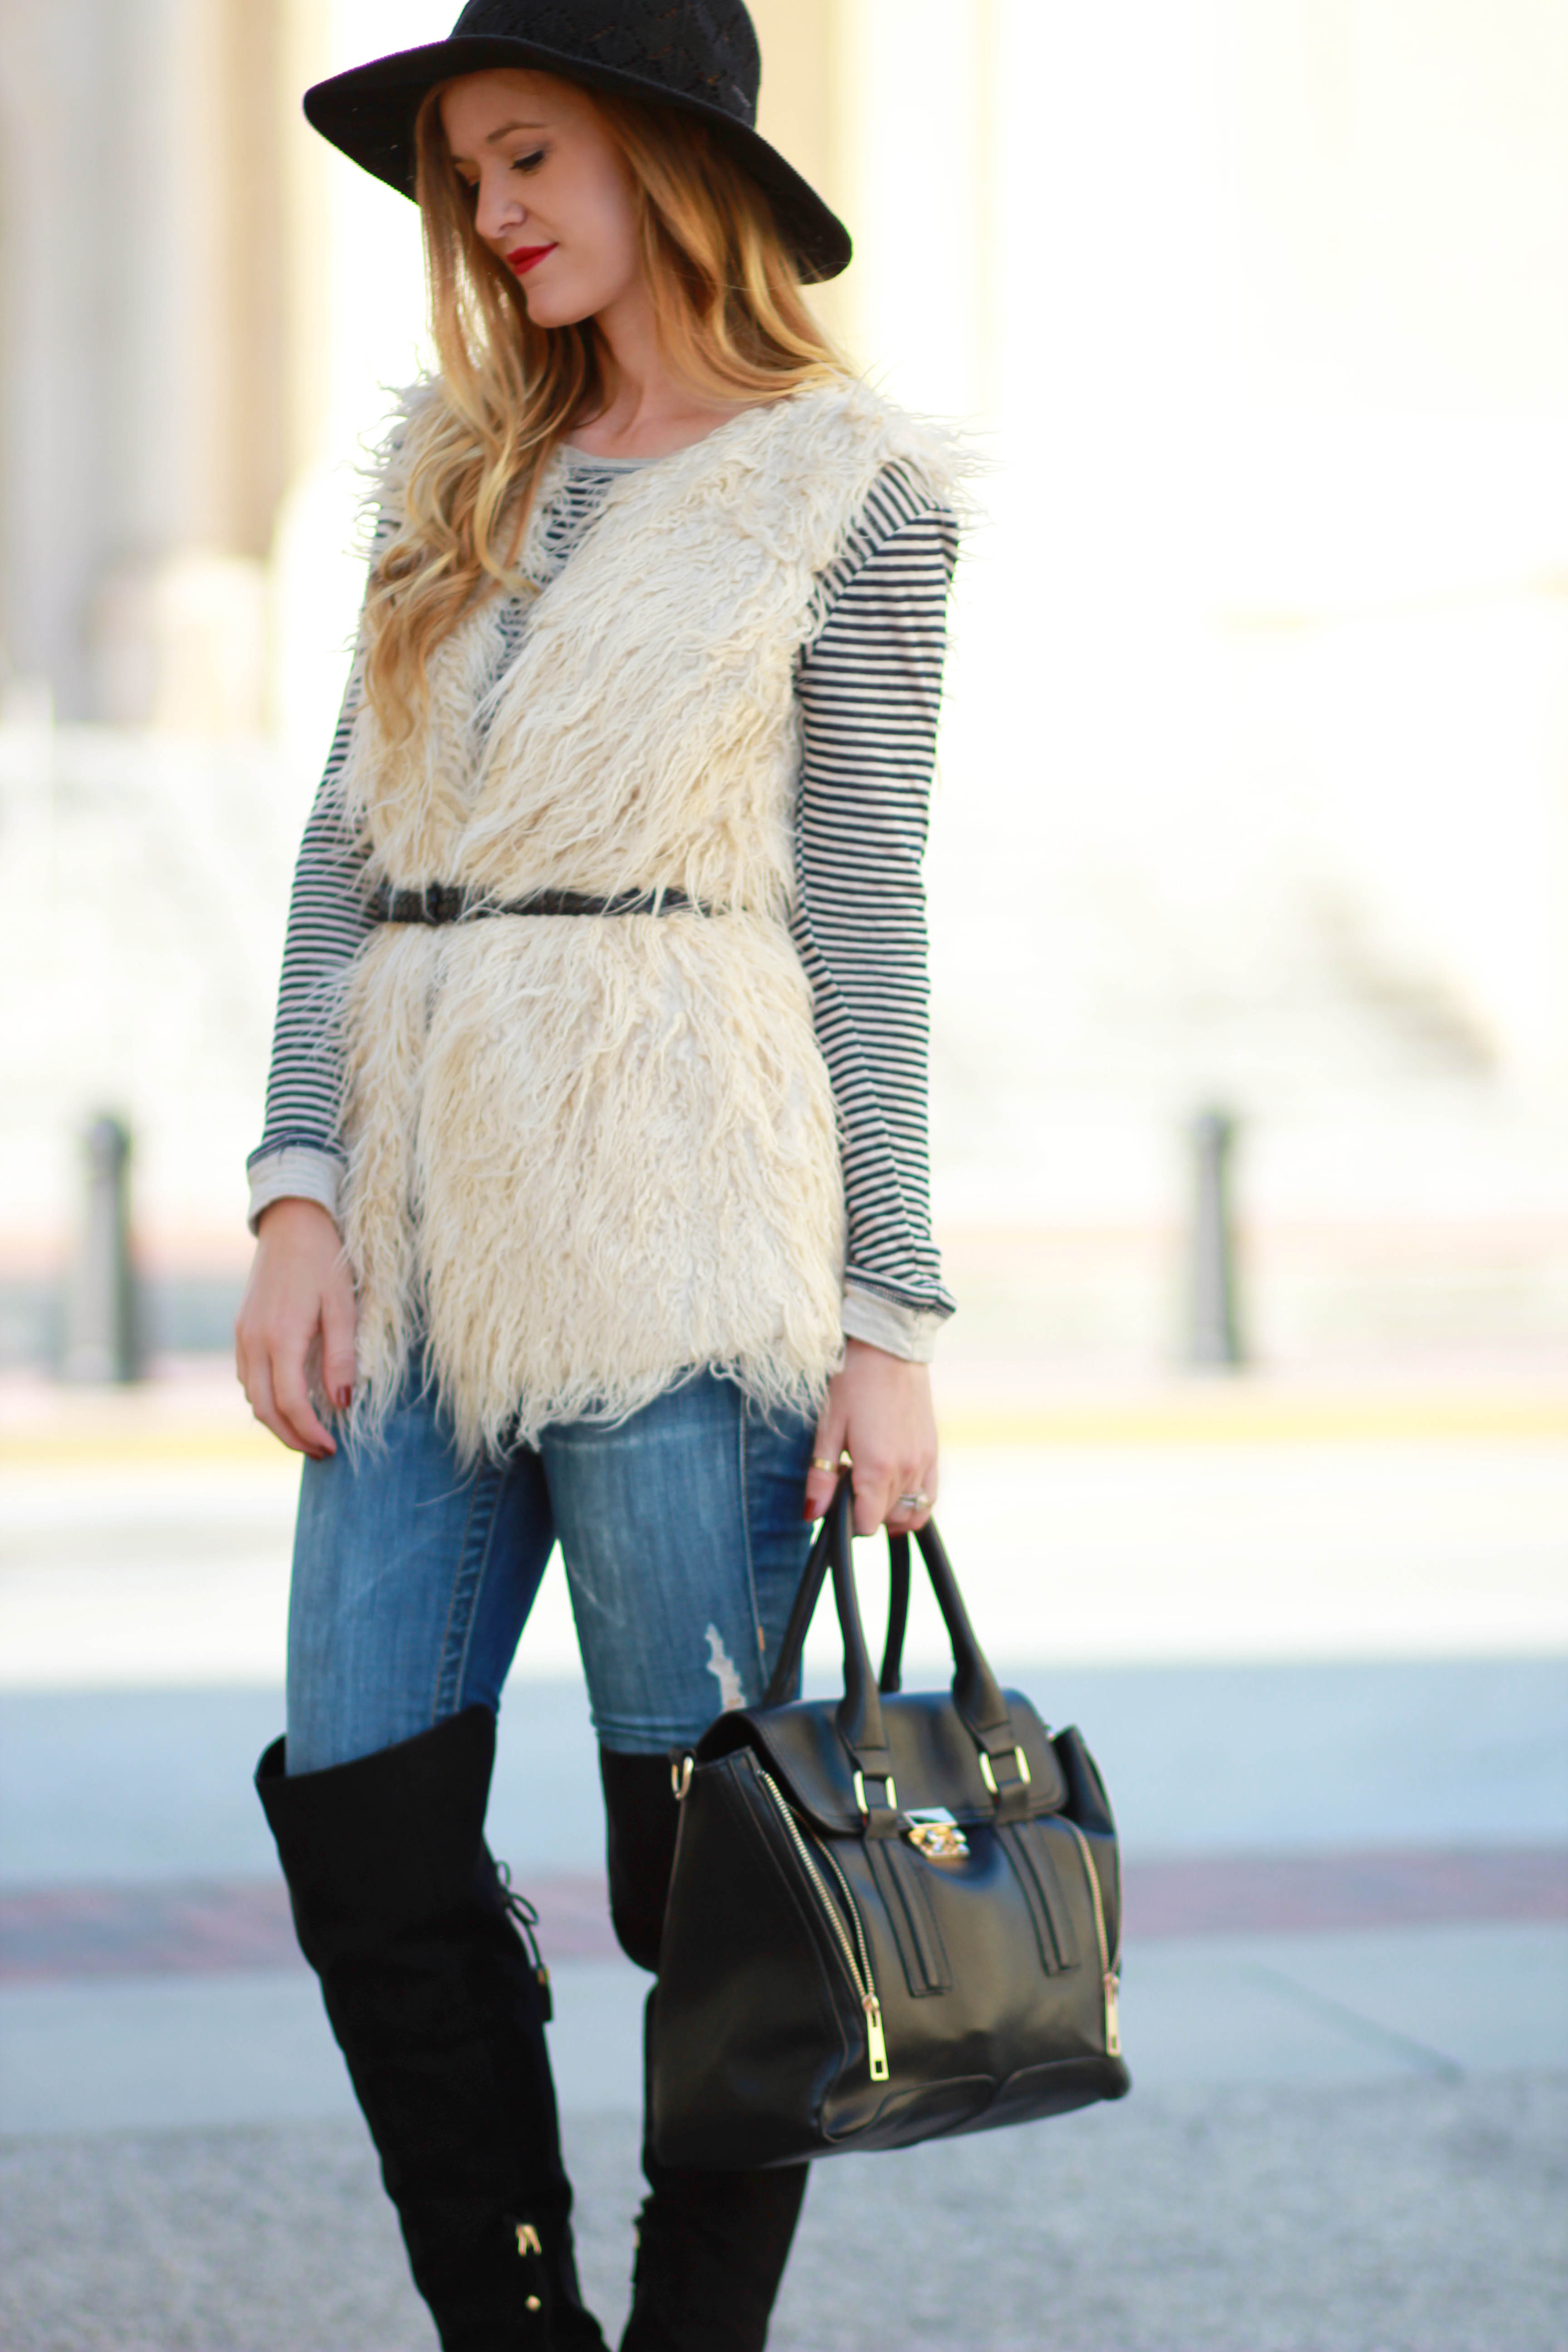 orlando/ florida fashion blogger styles sugar love boutique fur vest with true religion jeans and target over the knee boots for a fall outfit